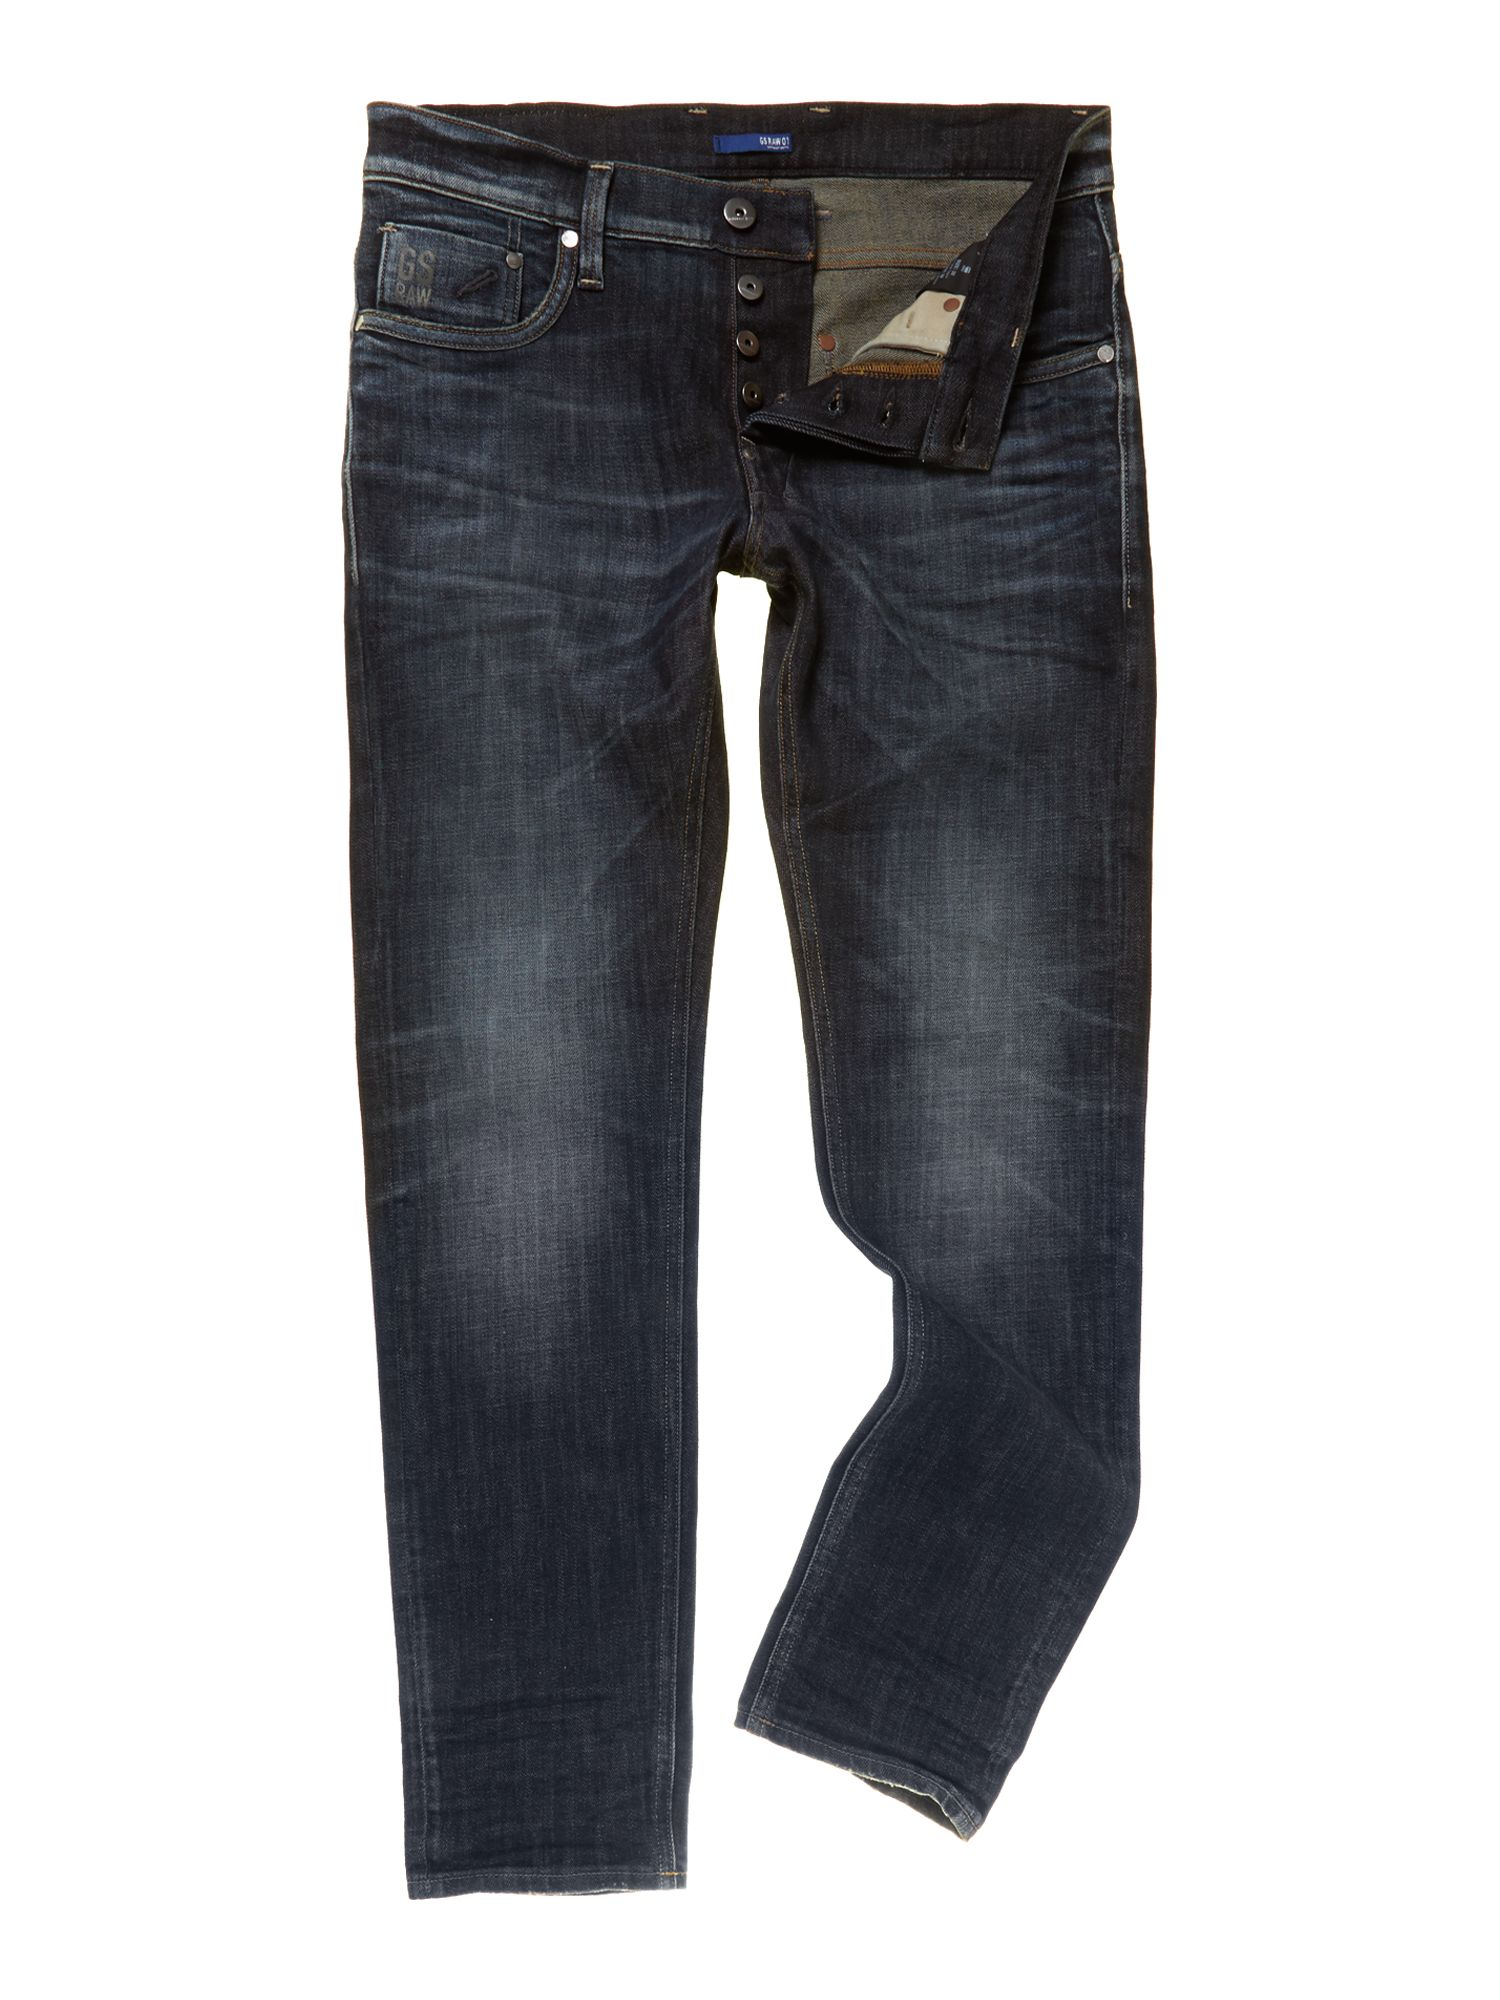 Defend super slim leg dark wash jeans